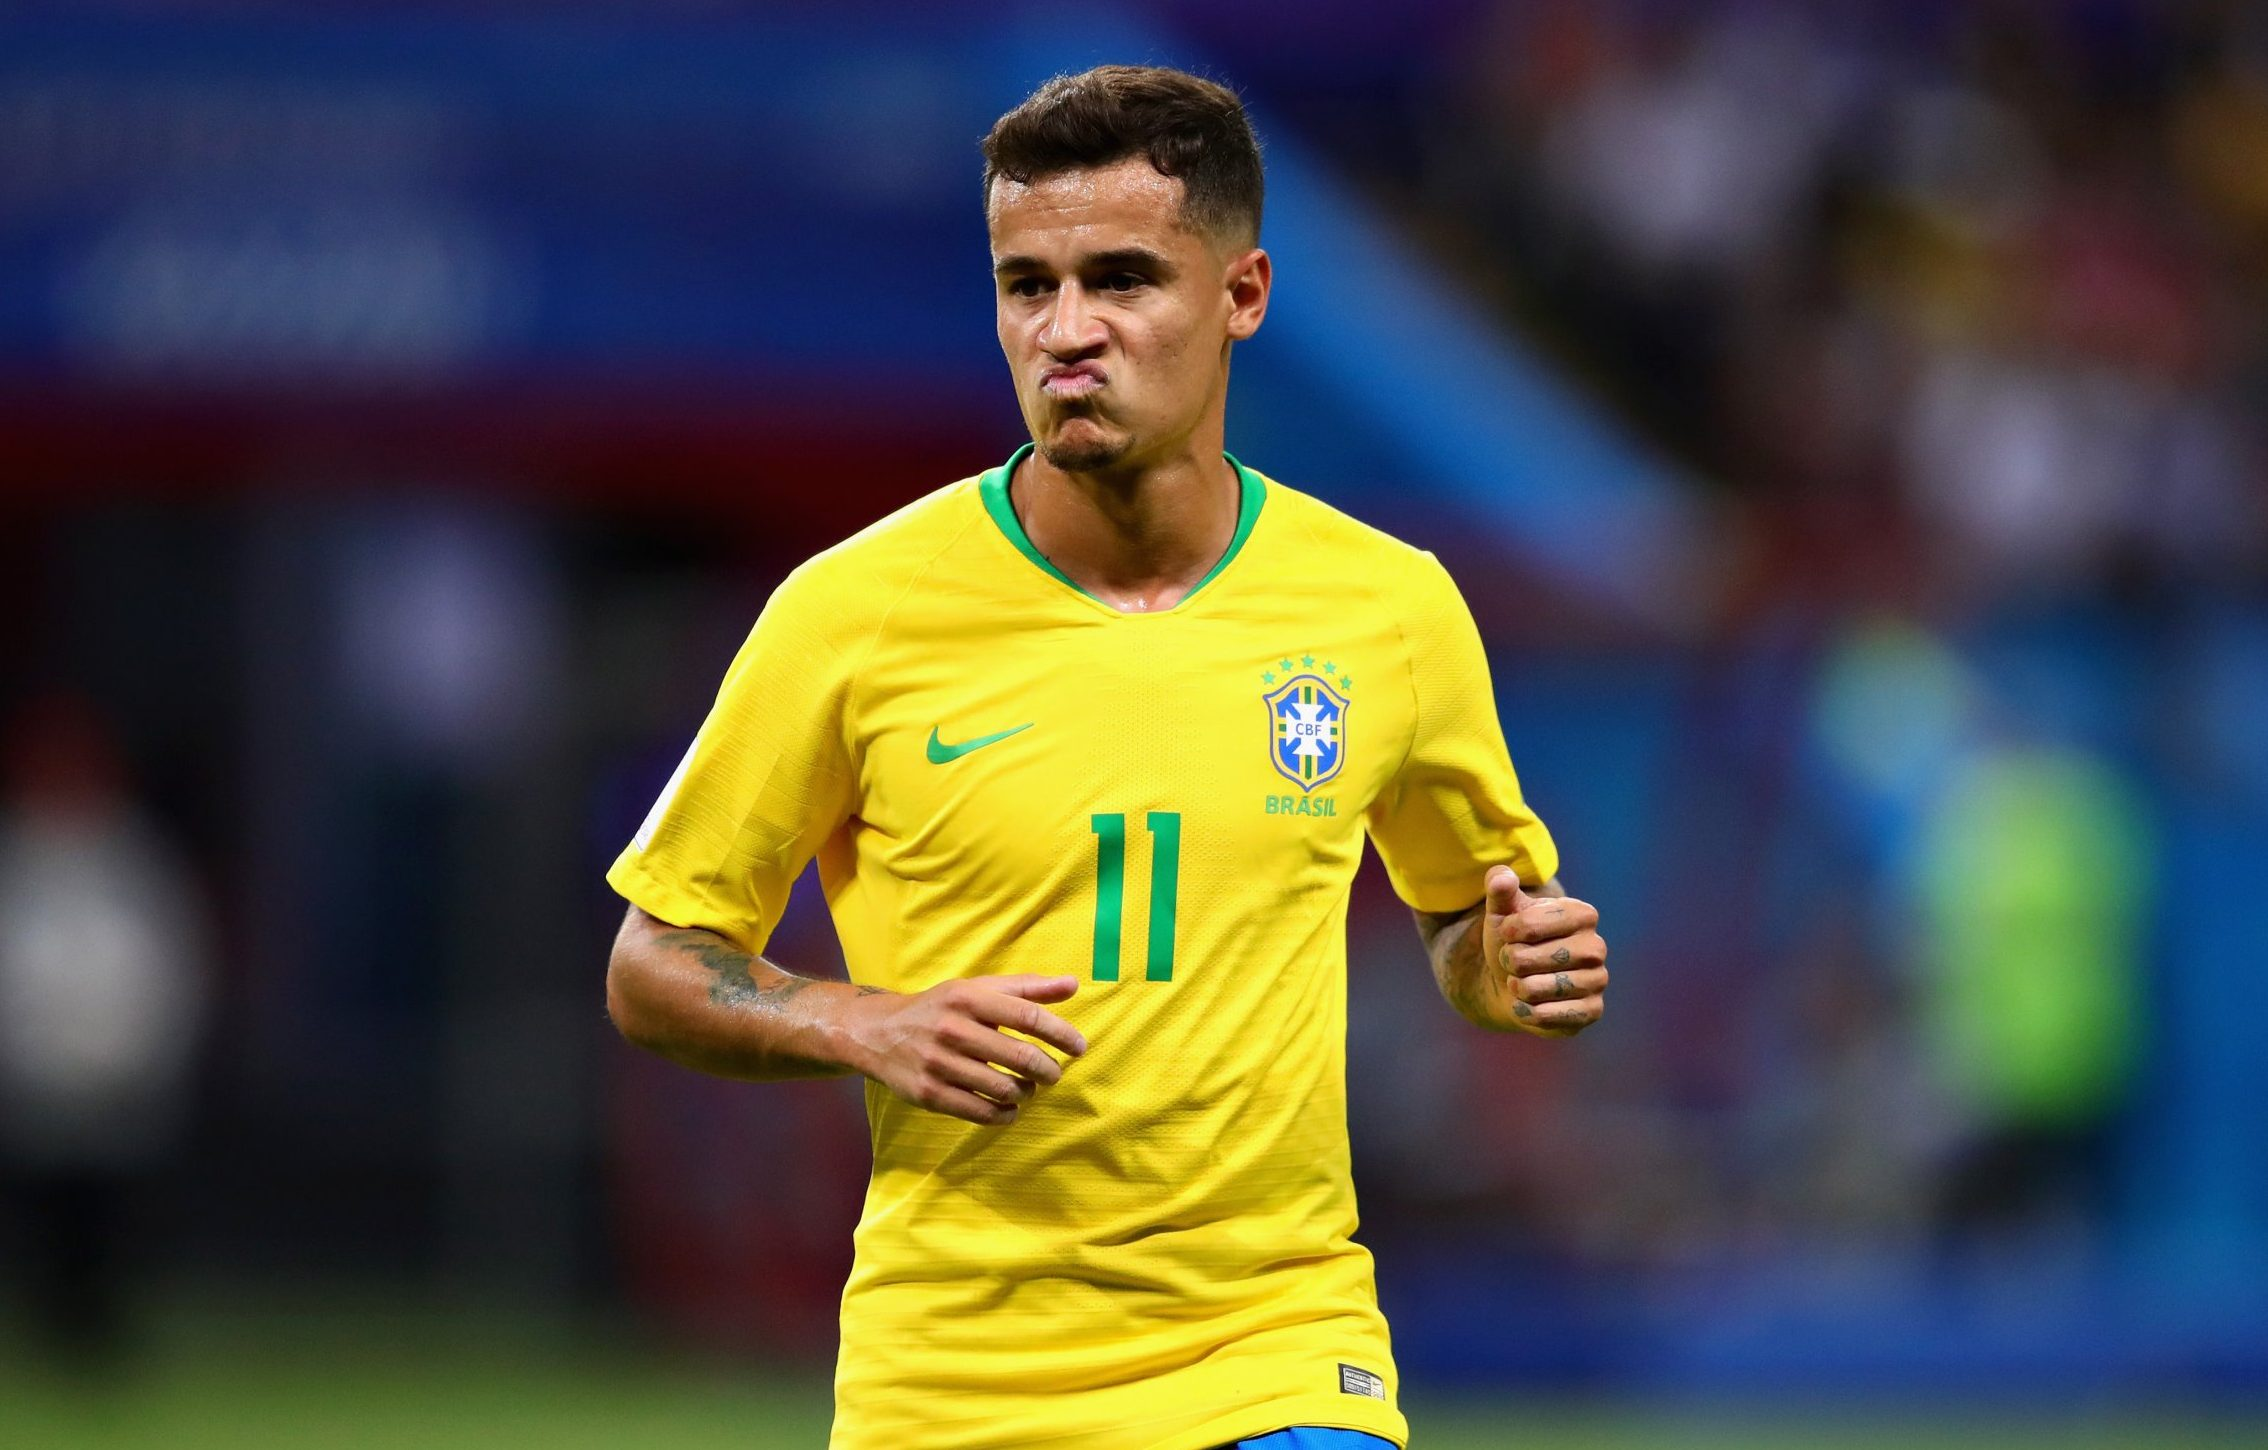 KAZAN, RUSSIA - JULY 06: Philippe Coutinho of Brazil in action during the 2018 FIFA World Cup Russia Quarter Final match between Brazil and Belgium at Kazan Arena on July 6, 2018 in Kazan, Russia. (Photo by Chris Brunskill/Fantasista/Getty Images)